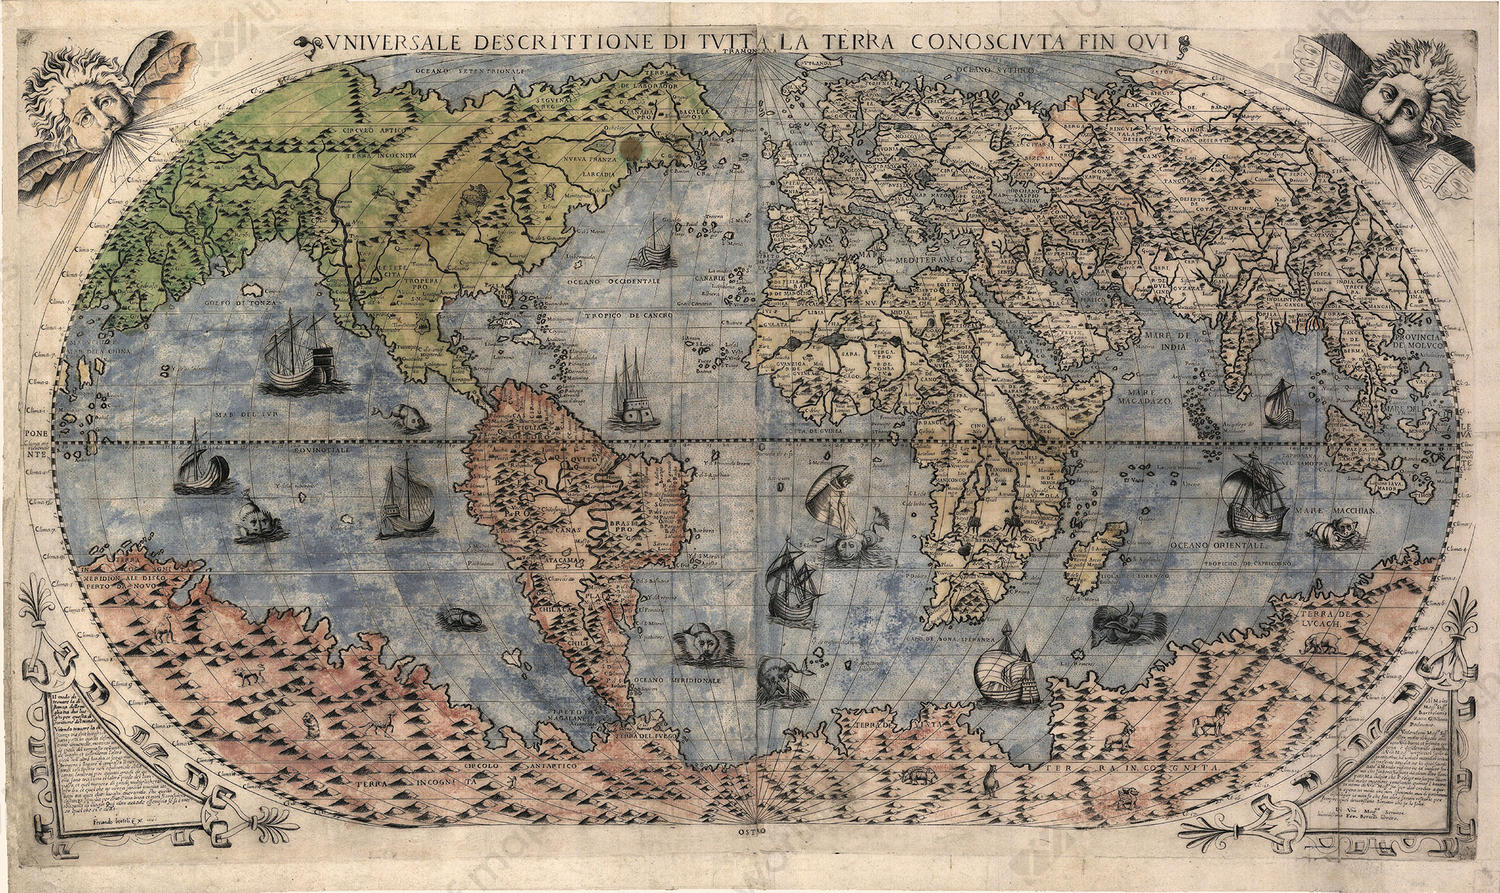 Digital world map year 1565 bertelli 1339 the world of maps digital world map year 1565 bertelli 1339 gumiabroncs Image collections